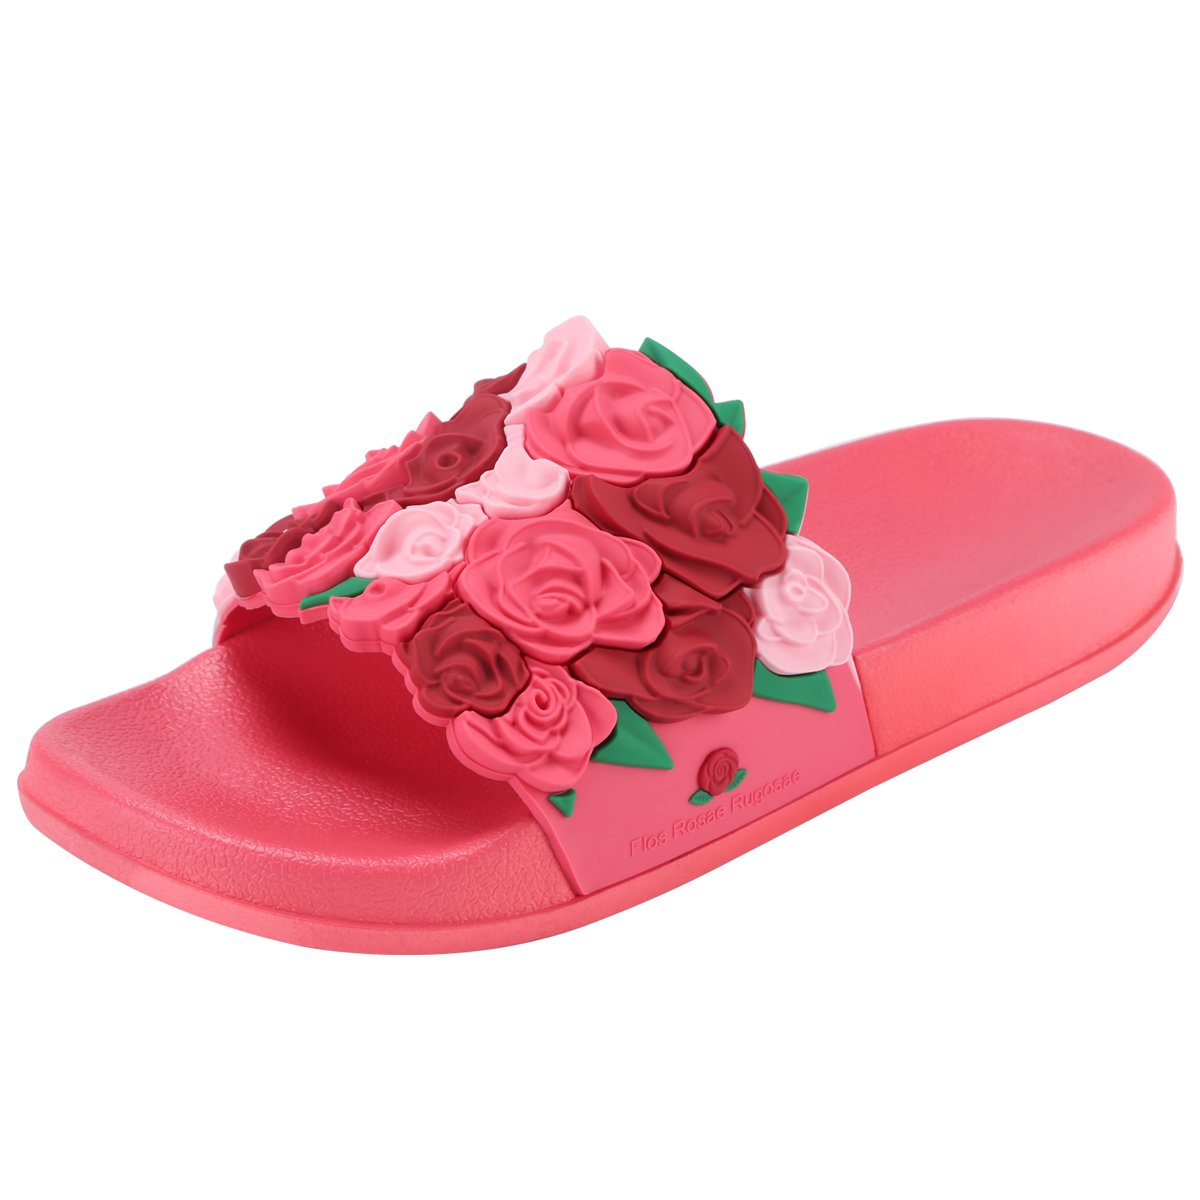 QIMAOO Women's Softey Flat Slide Sandals Slip On Open Toe Strappy Platform Wedge Slippers Summer Beach House Bath Shower Shoes for Indoor Outdoor Casual, Stylish, Durable and Comfortable